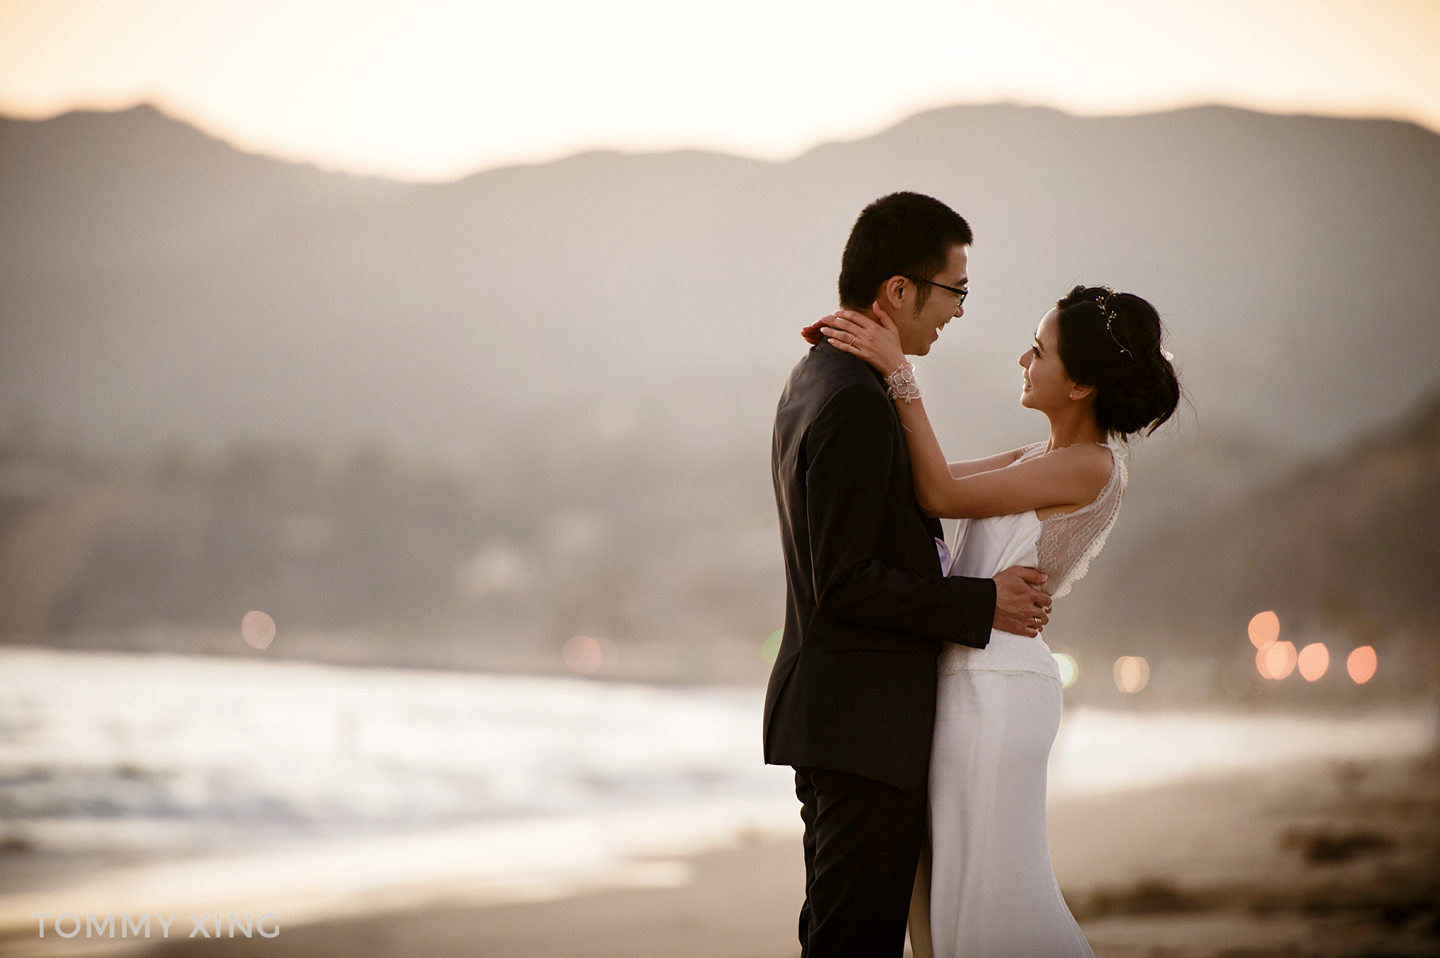 Los Angeles per-wedding 洛杉矶婚纱照 by Tommy Xing Photography 24.jpg